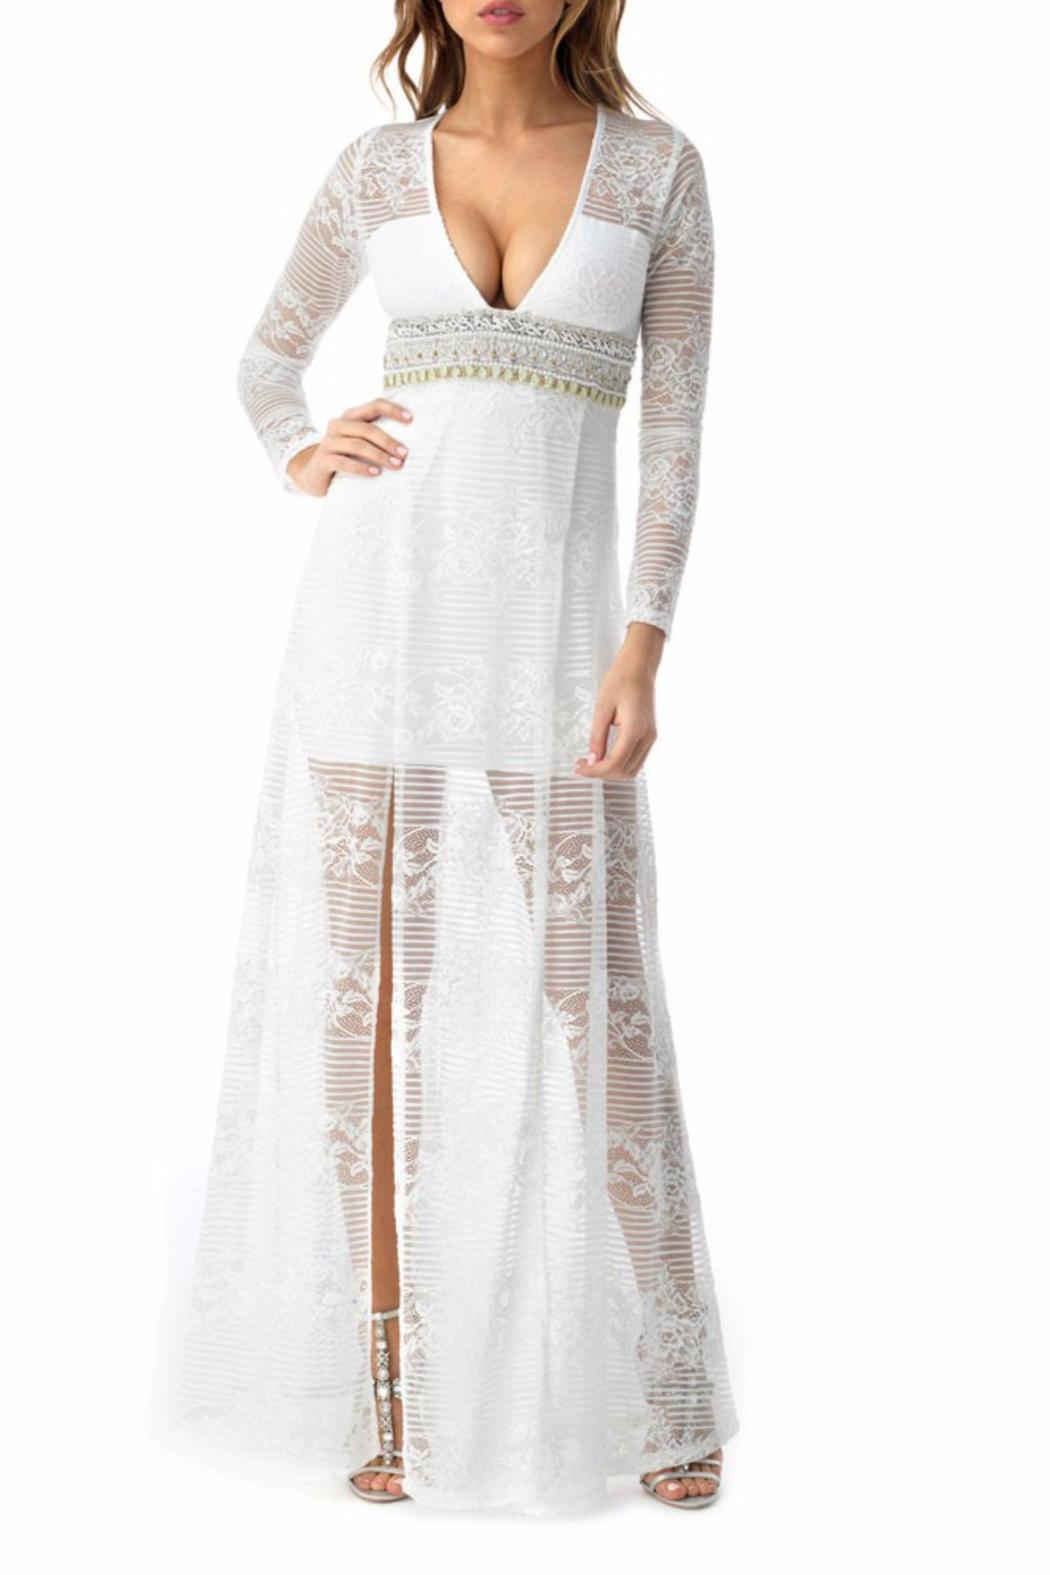 Sky Collection Trovald Maxi Dress - Main Image